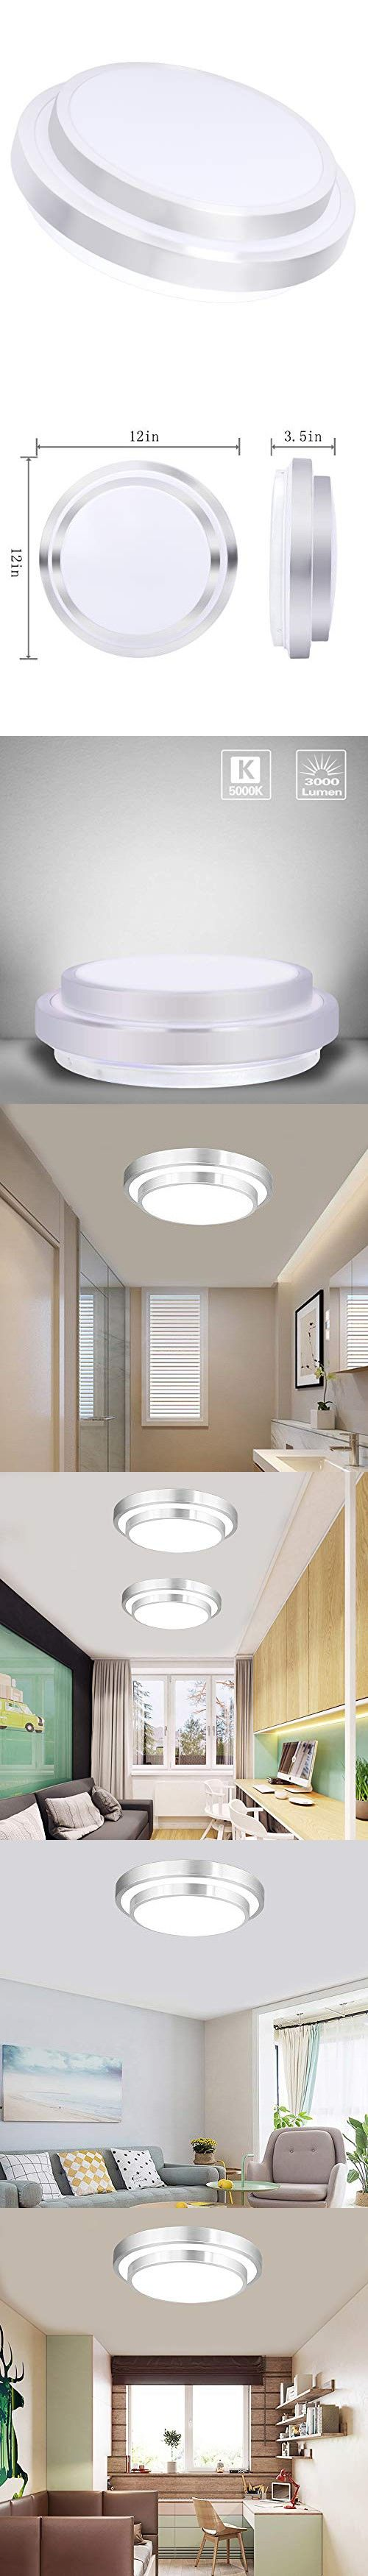 Kitchen Balcony Living Room for Bedroom 18w 1800lm Bathroom Lamp Wall Lamp Led Ceiling Lamp Bathroom Office Ceiling Lamp Ip54 Splash Protection Neutral White 4000k